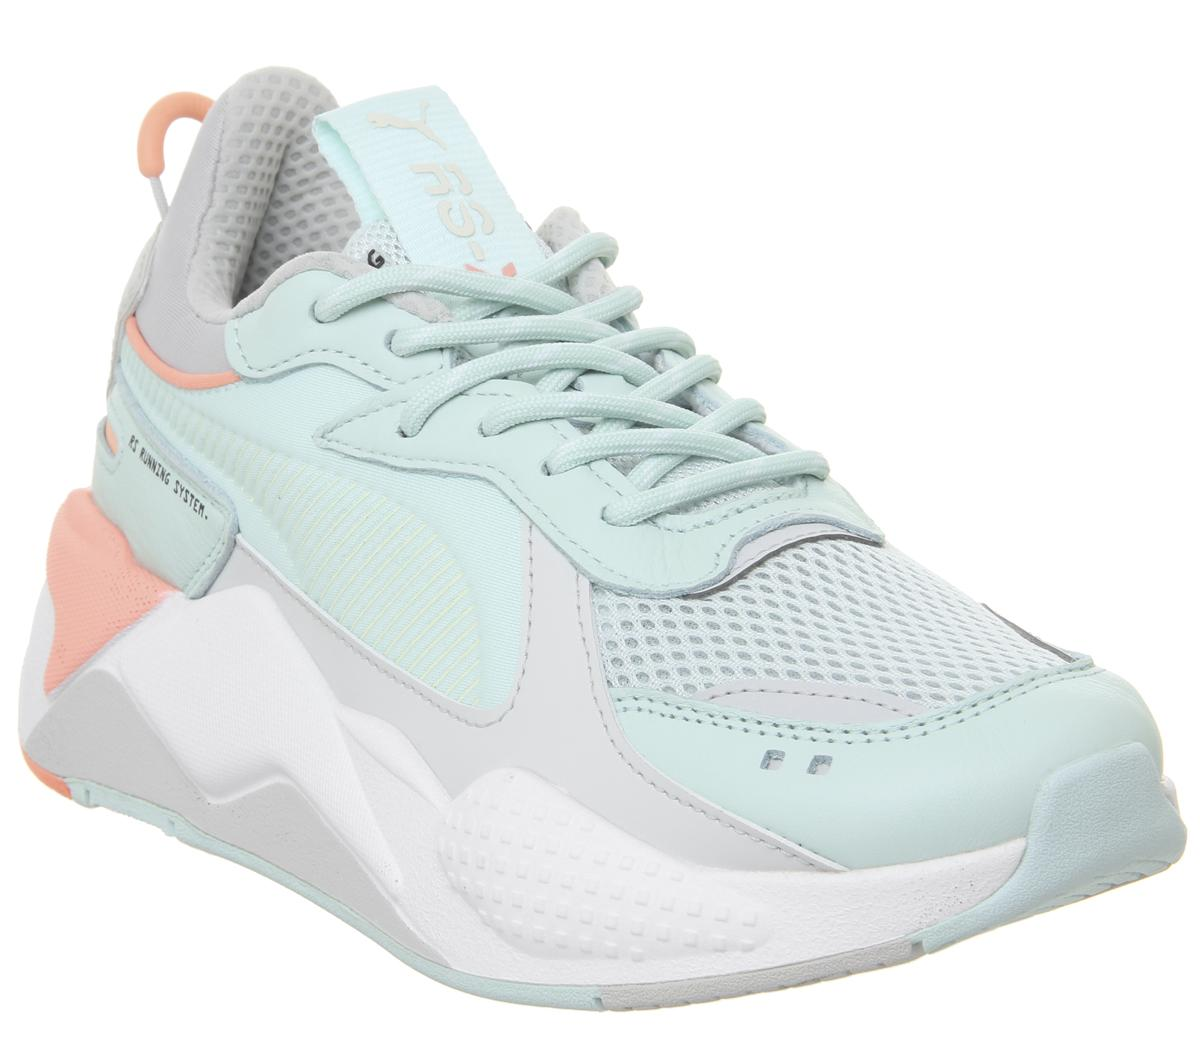 Puma Rs-x Tracks MINT PEACH WHITE   Compare   The Oracle Reading